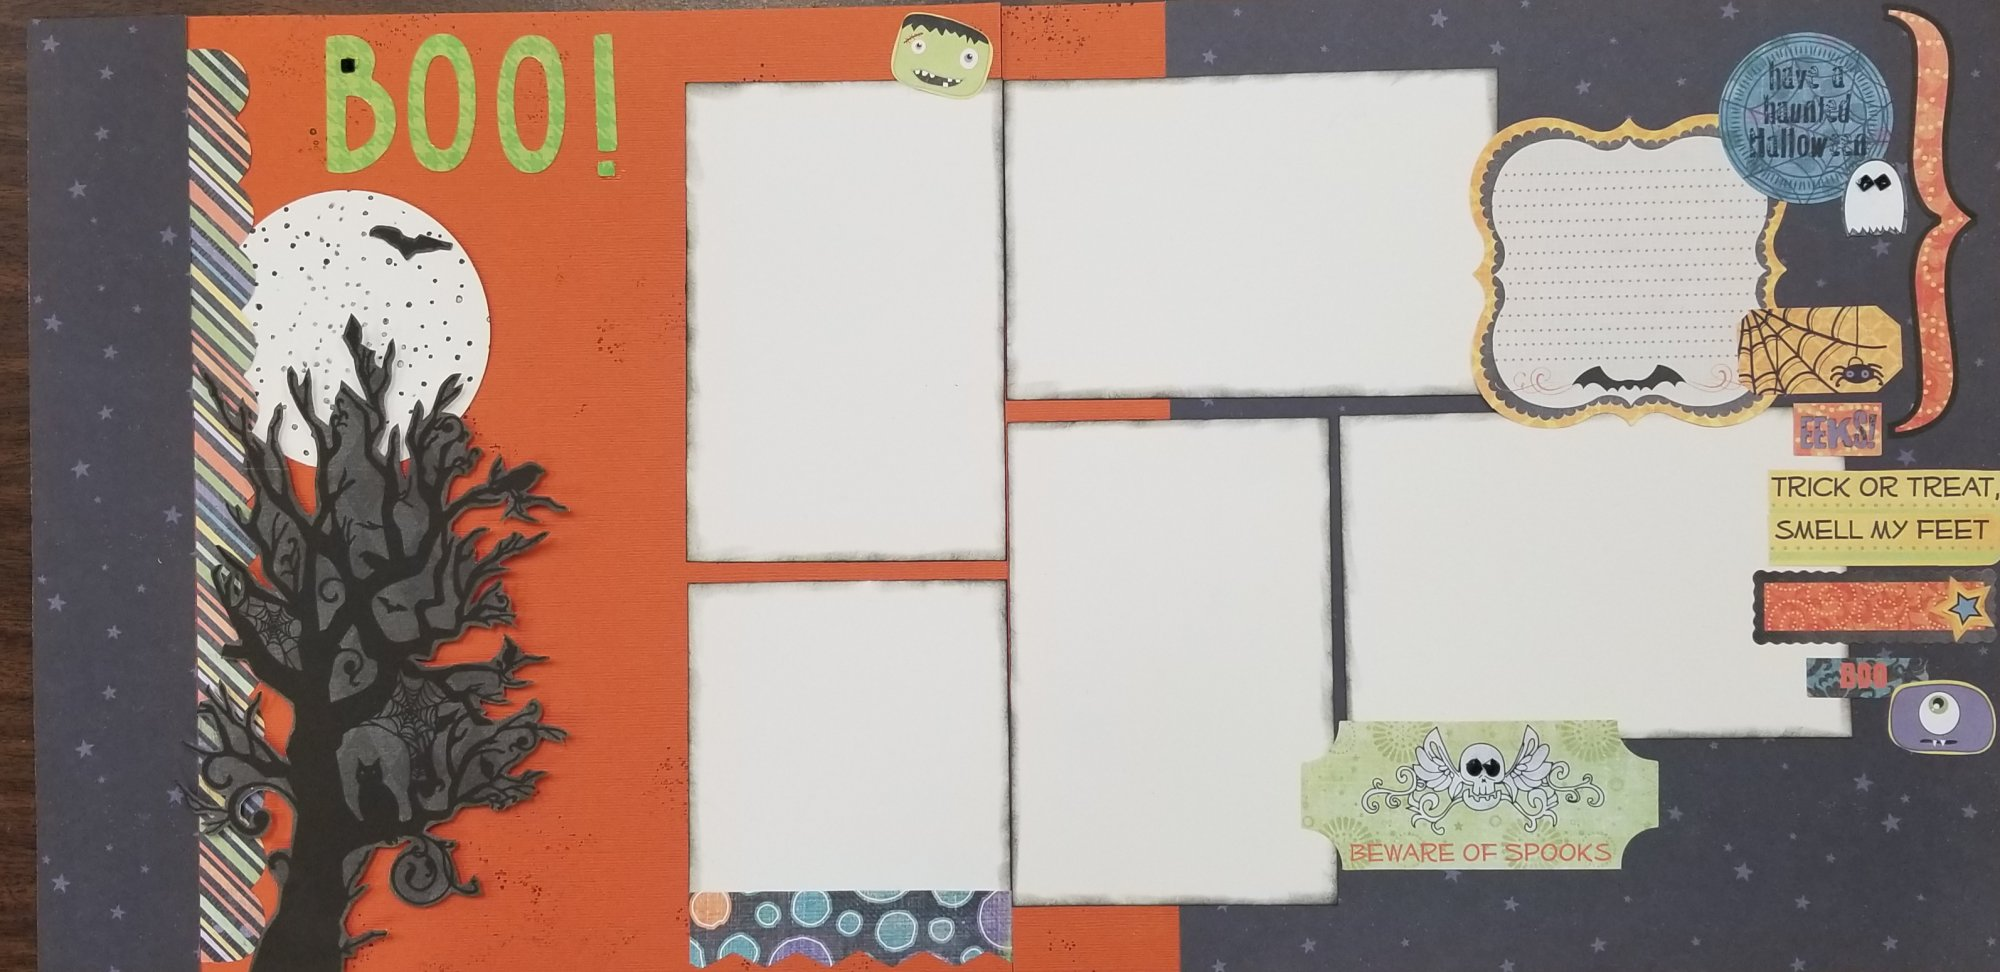 Boo! 2-page layout